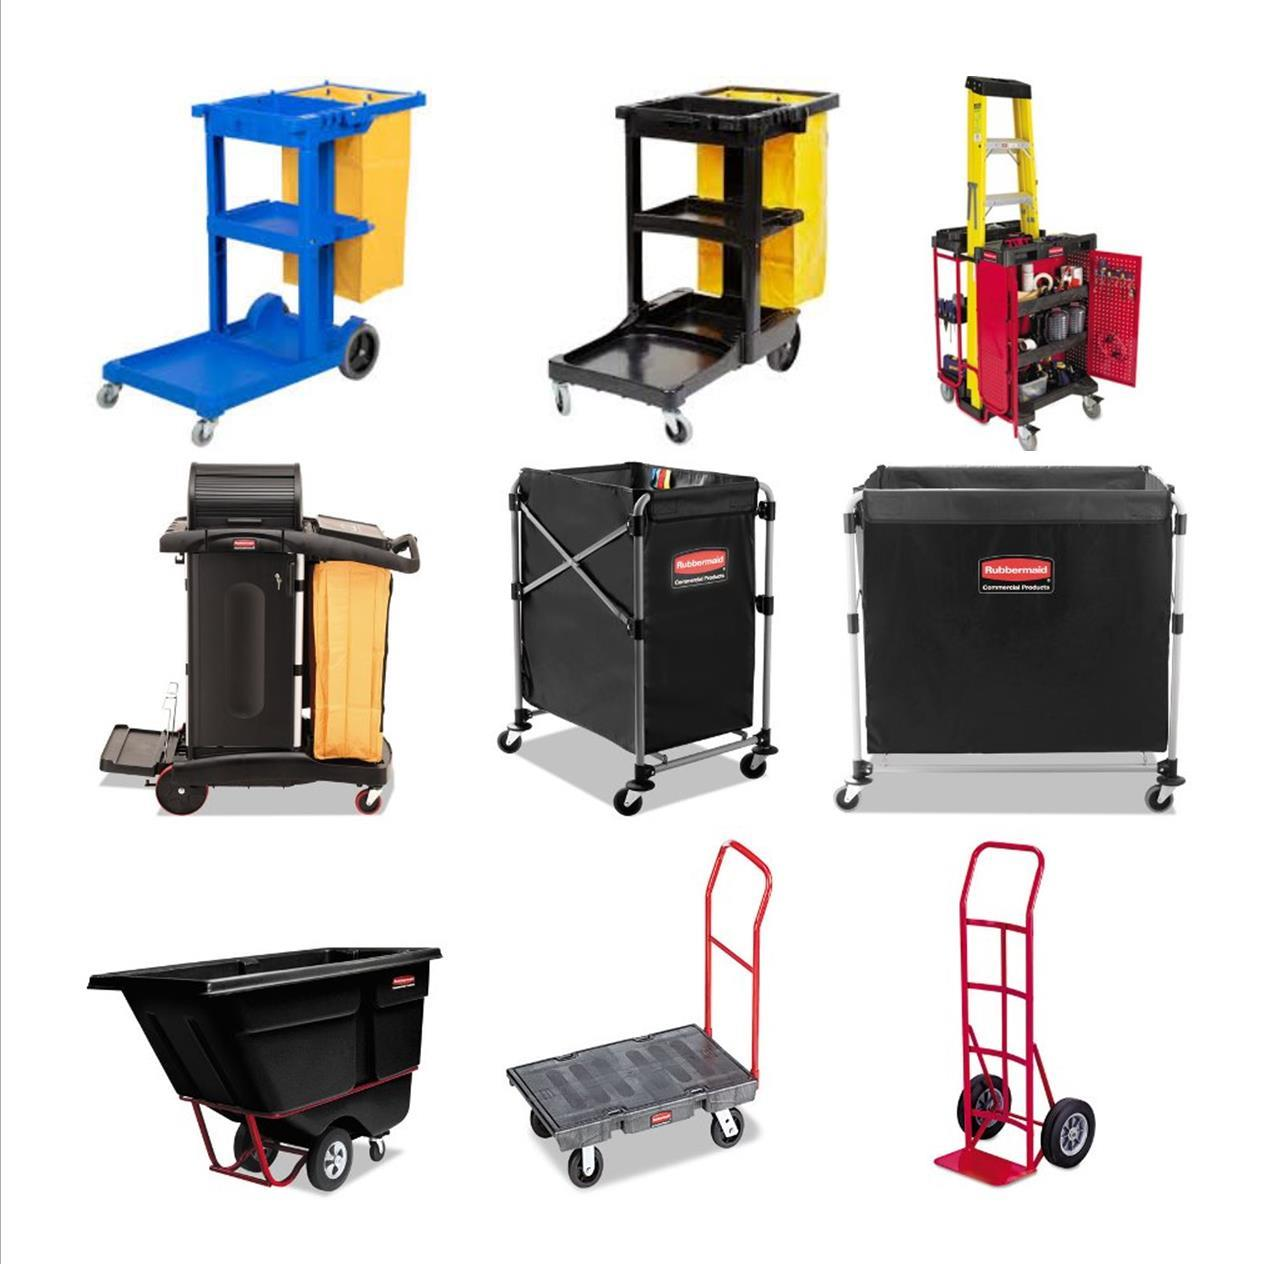 Housekeeping, Janitorial & Service Carts